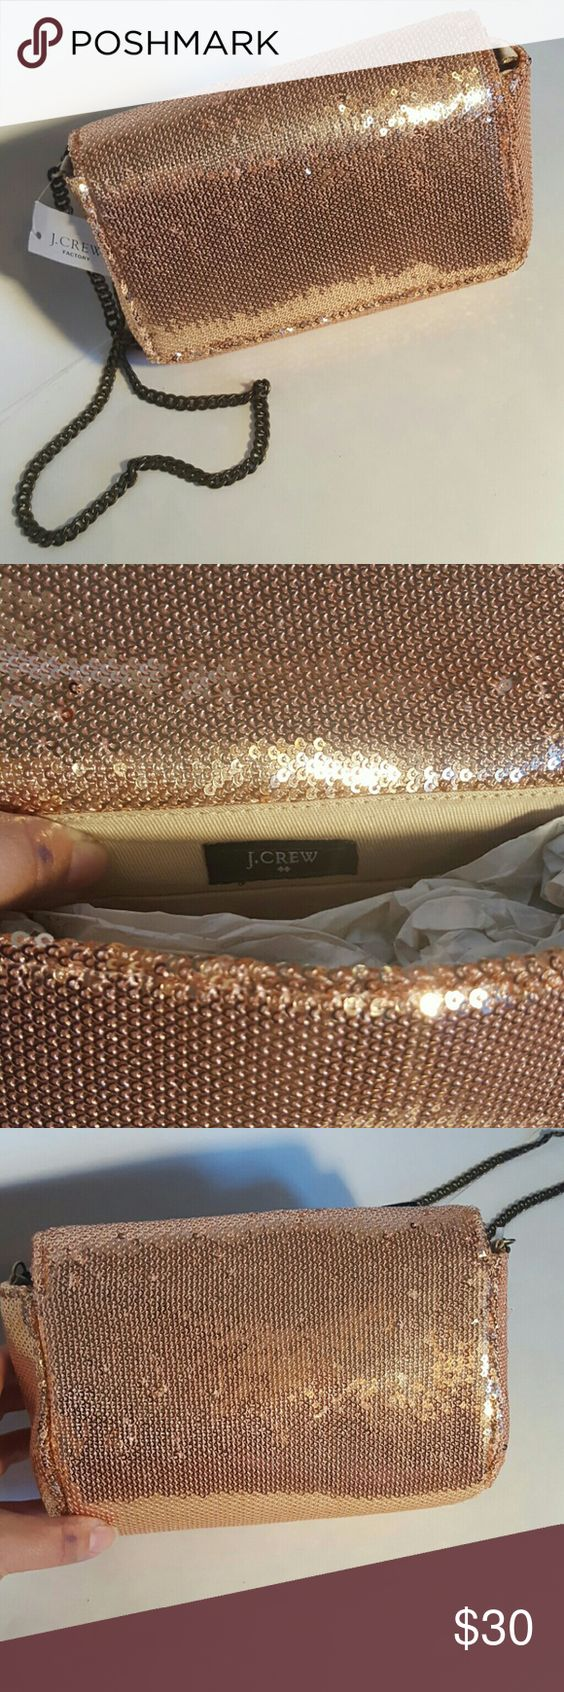 *SALE* J.CREW. evening clutch rose gold Condition 9/10, brand new with tags ,but on the bag if noticed that 2-3 sparkles are missing , which its not noticeable, like you see on the picture, probably from moving in one closet to another, it's great for upcoming holidays, Height 6', Length 8.5', Width 2.5', if you have any questions just let me know. Thanks. Happy Holidays. J. Crew Factory Bags Clutches & Wristlets